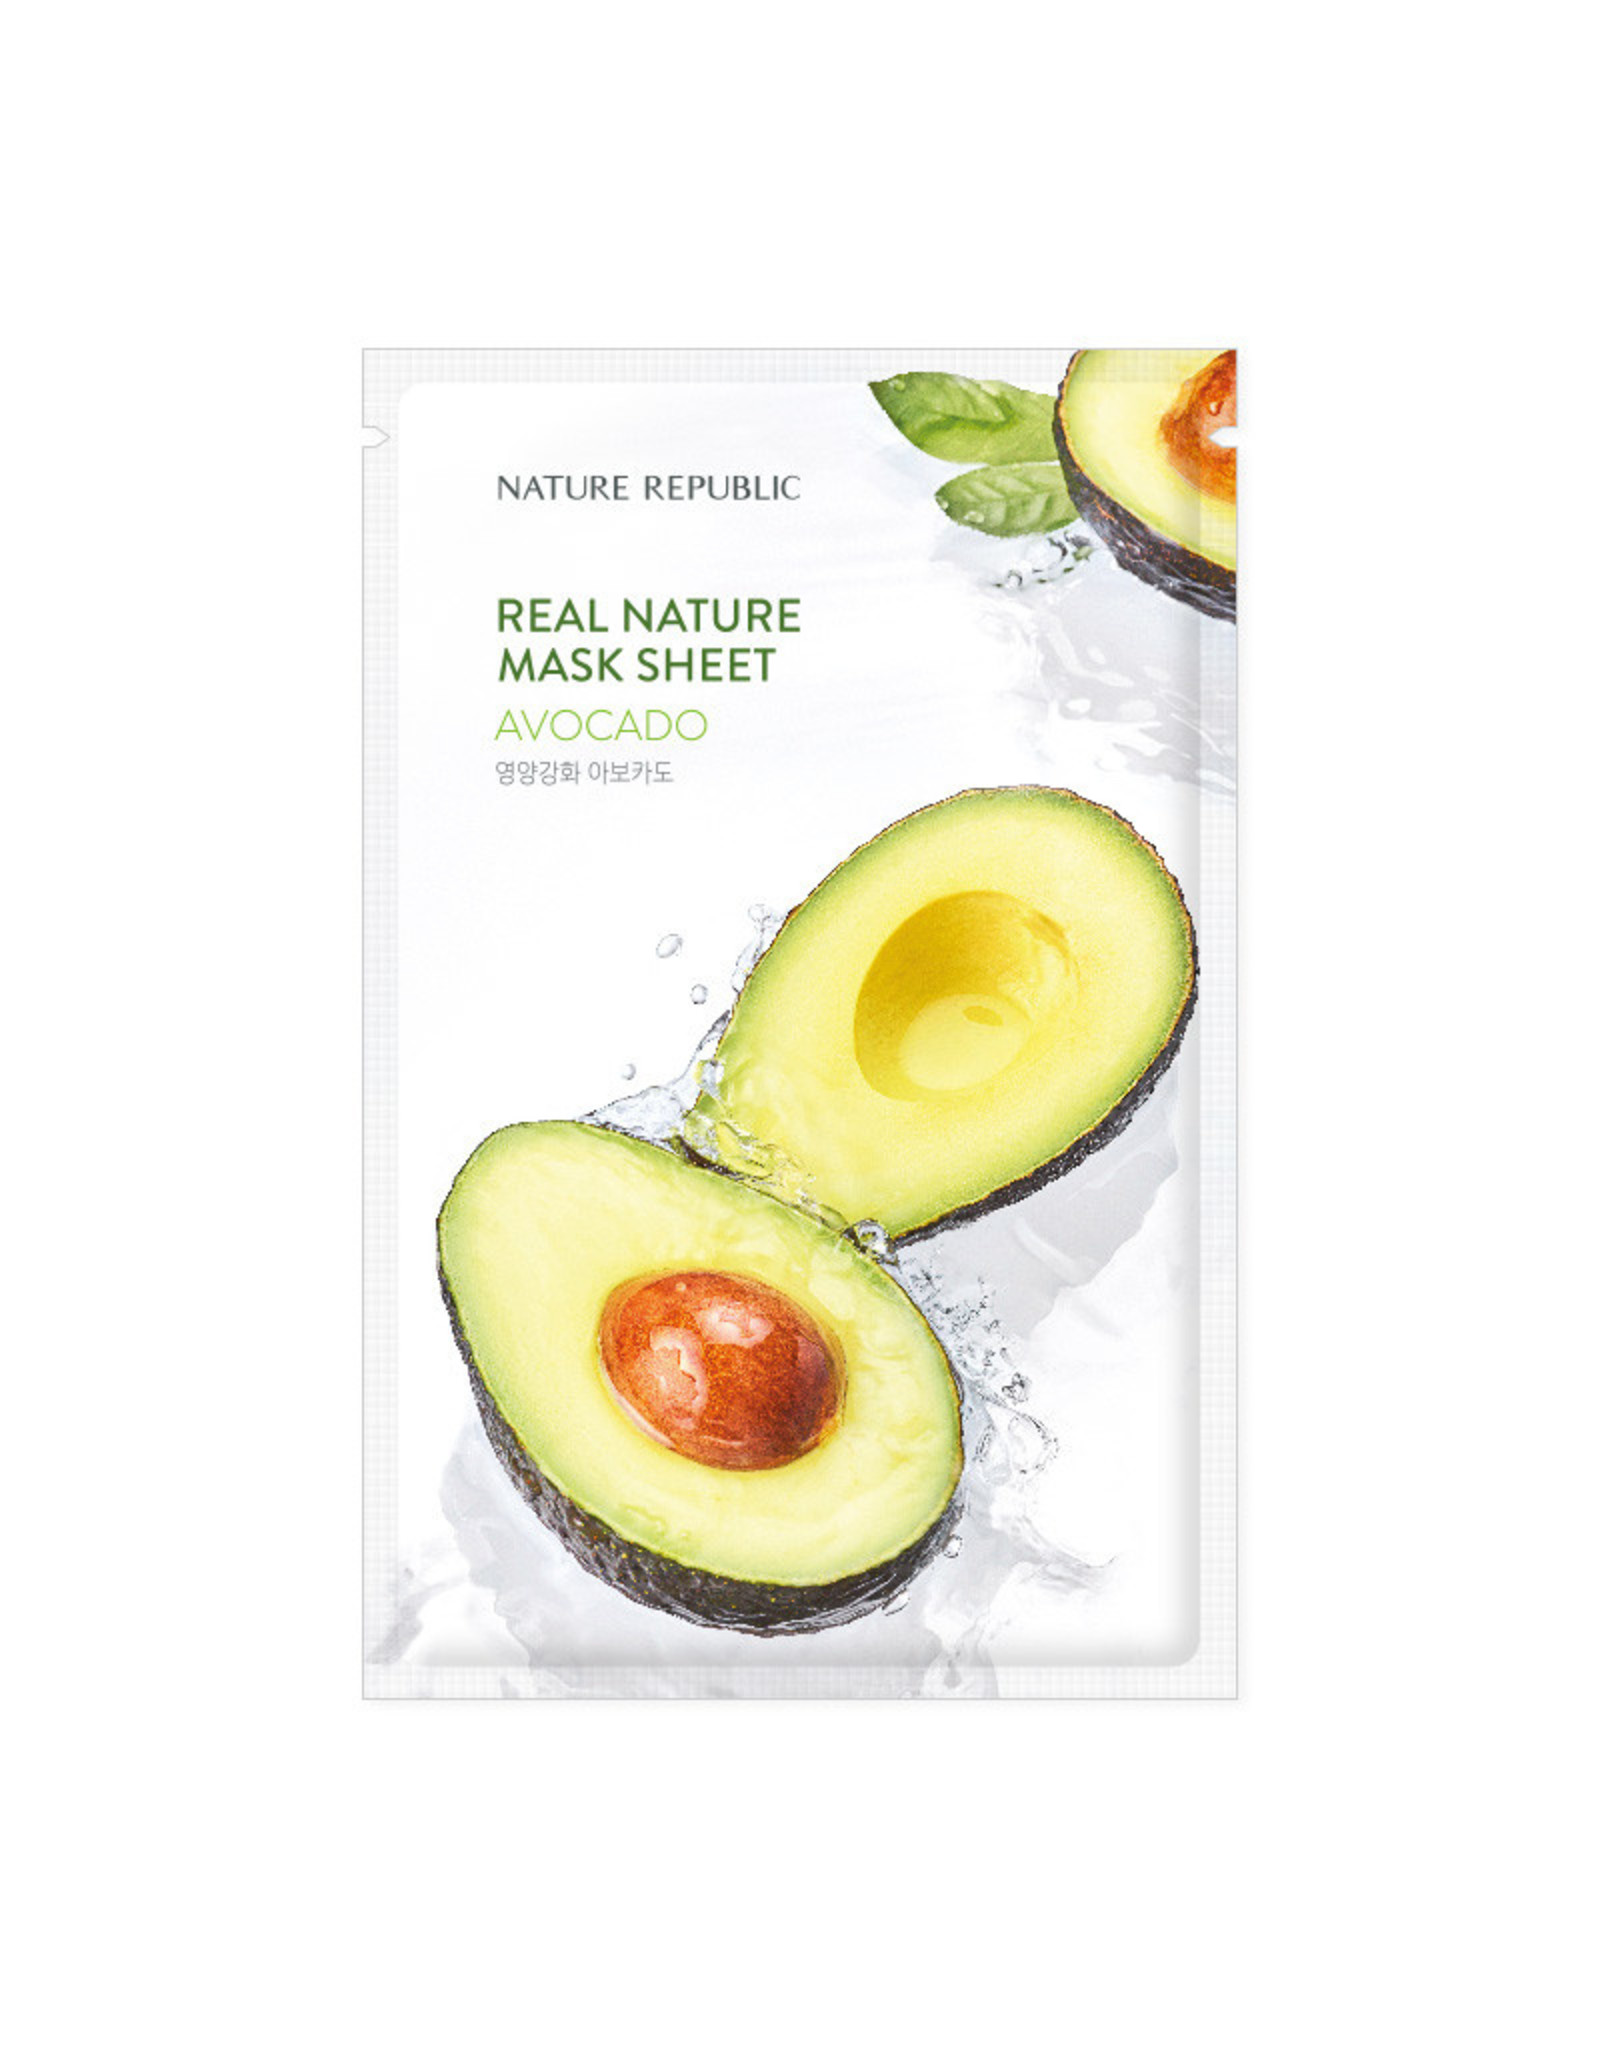 Real Nature Avocado Mask Sheet (Orig $1.90)